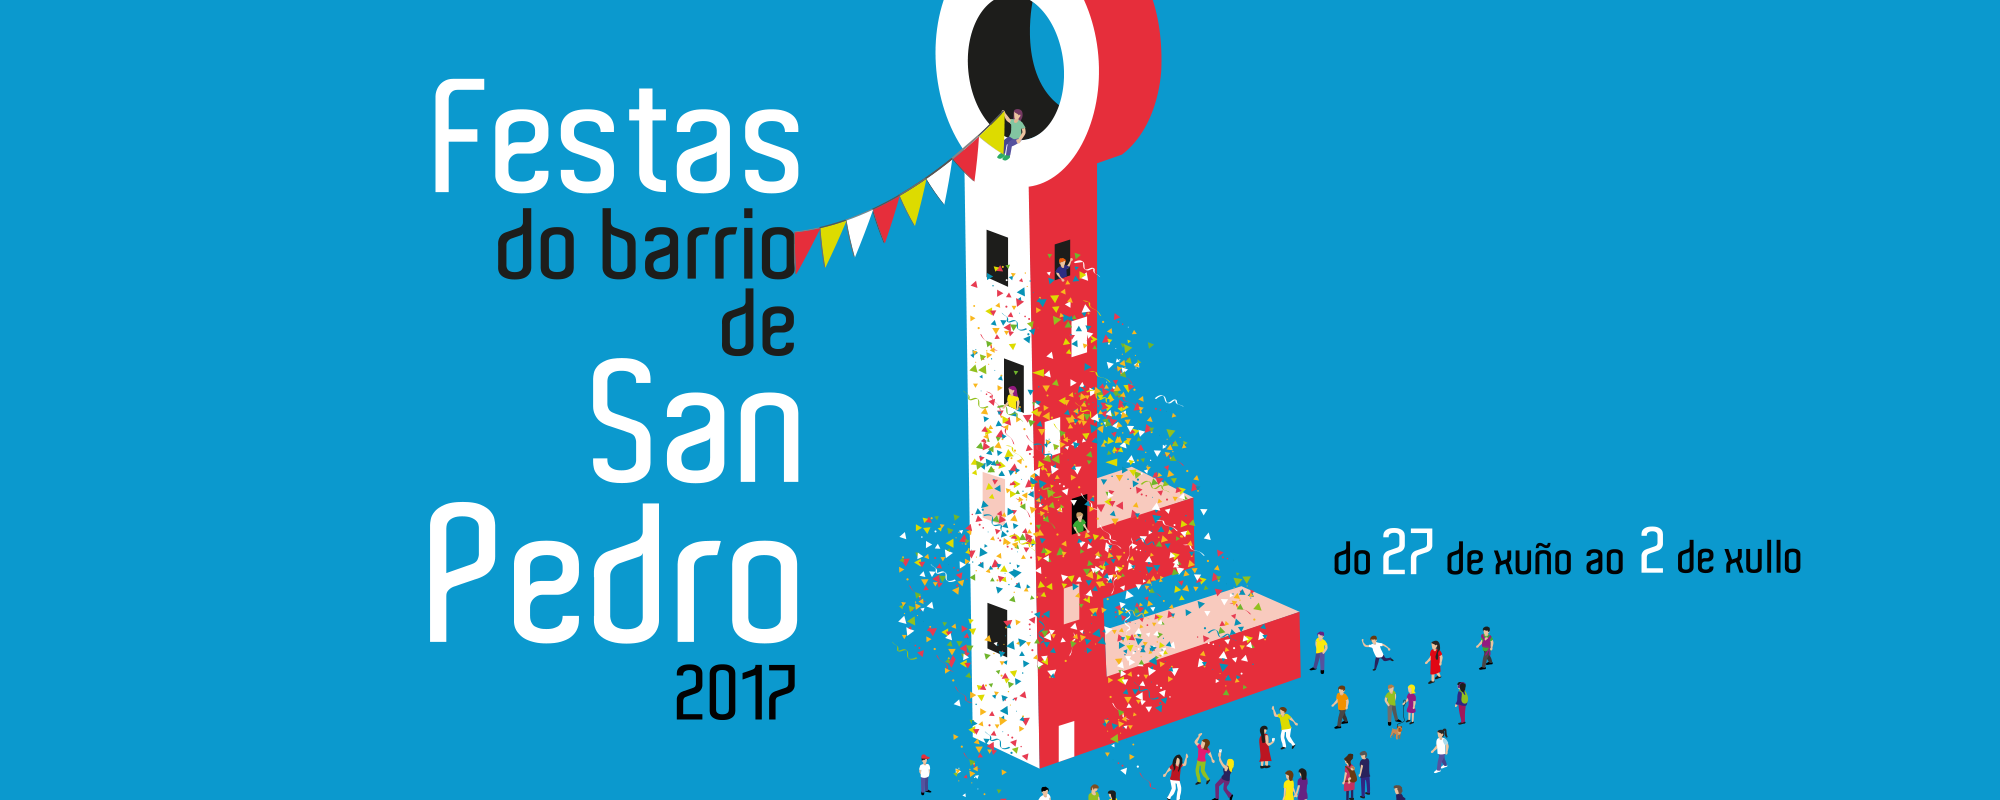 Festas do Barrio de San Pedro